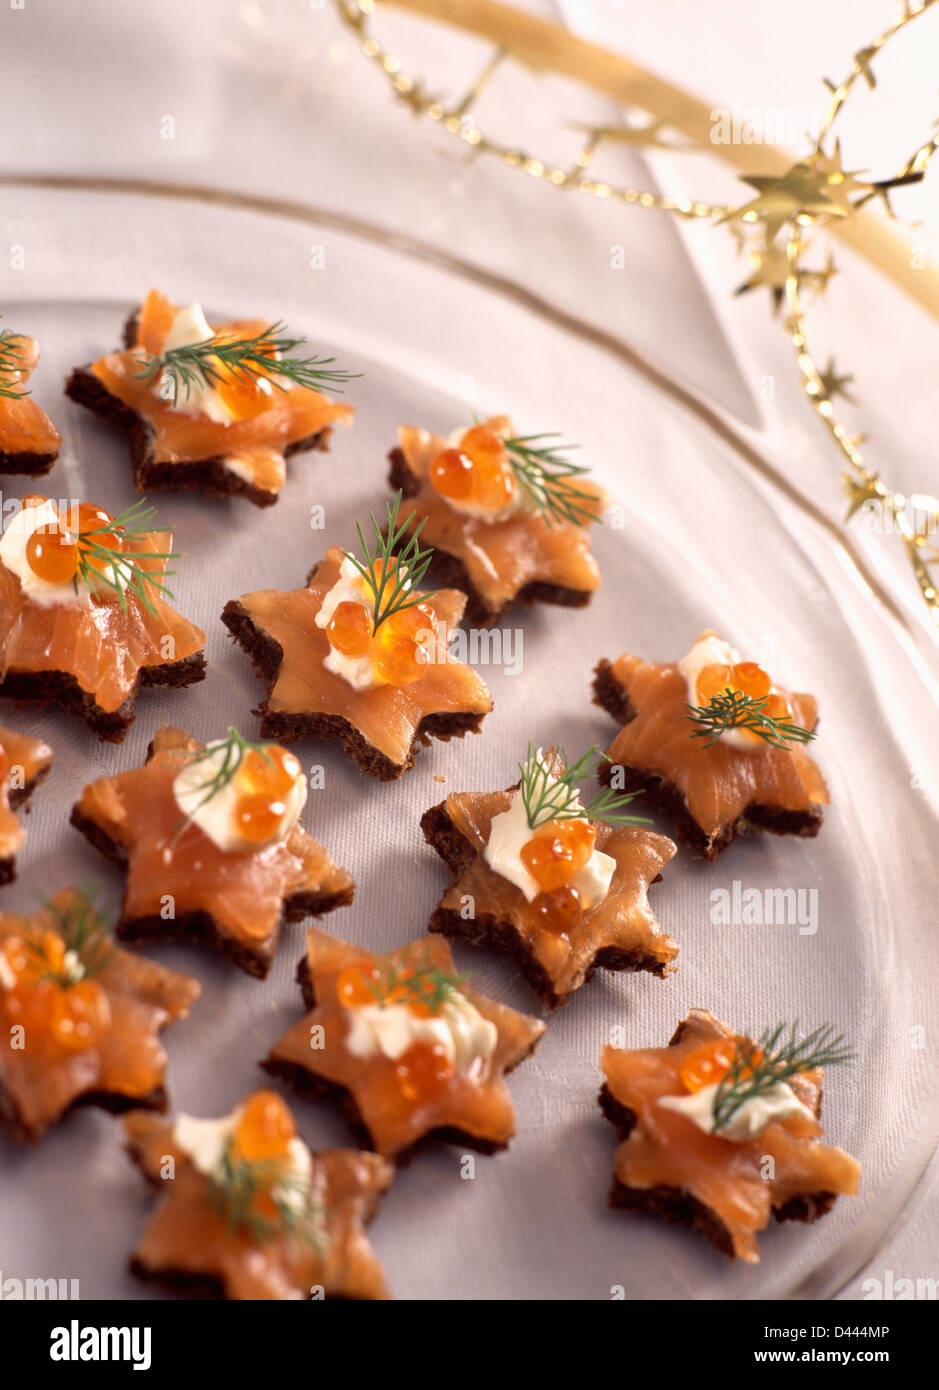 Christmas Starters.Occasions Christmas Starters Parties Stock Photos